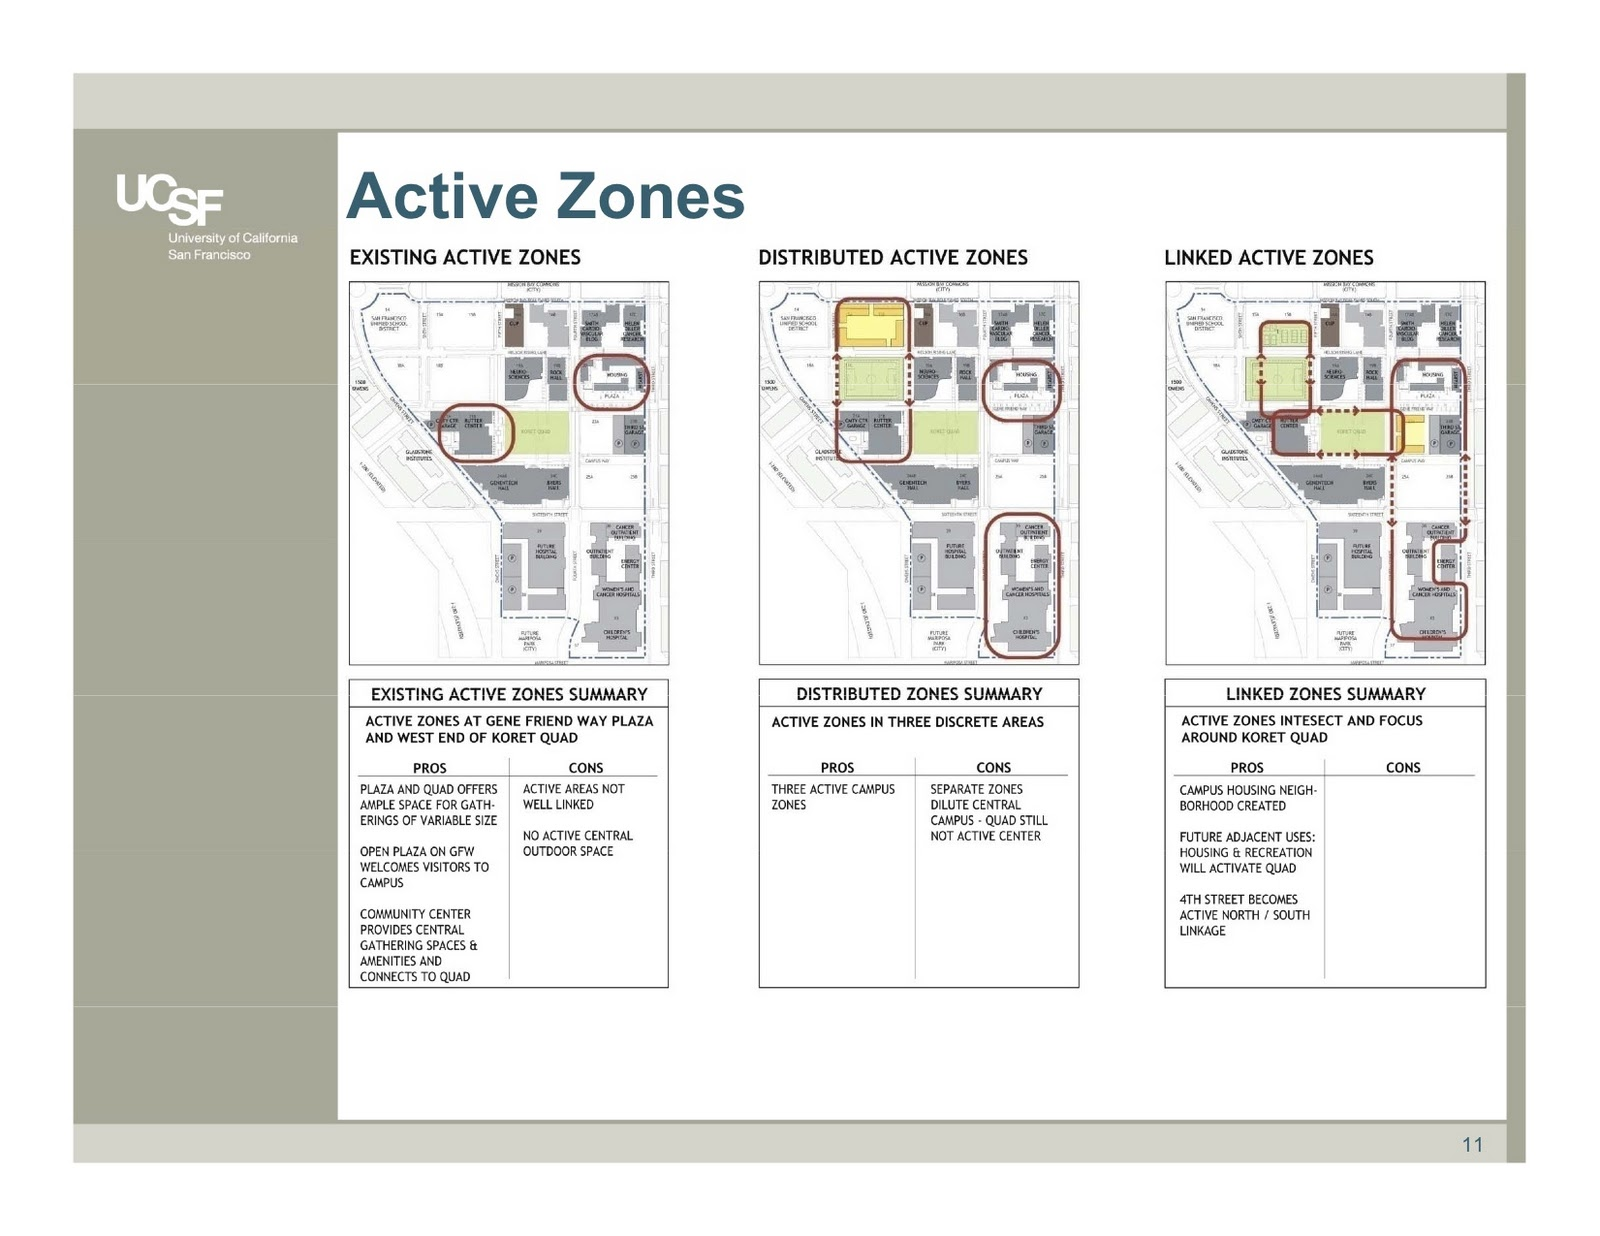 D10 Watch: Mission Bay Phase 2 Community Feedback Sought - UCSF